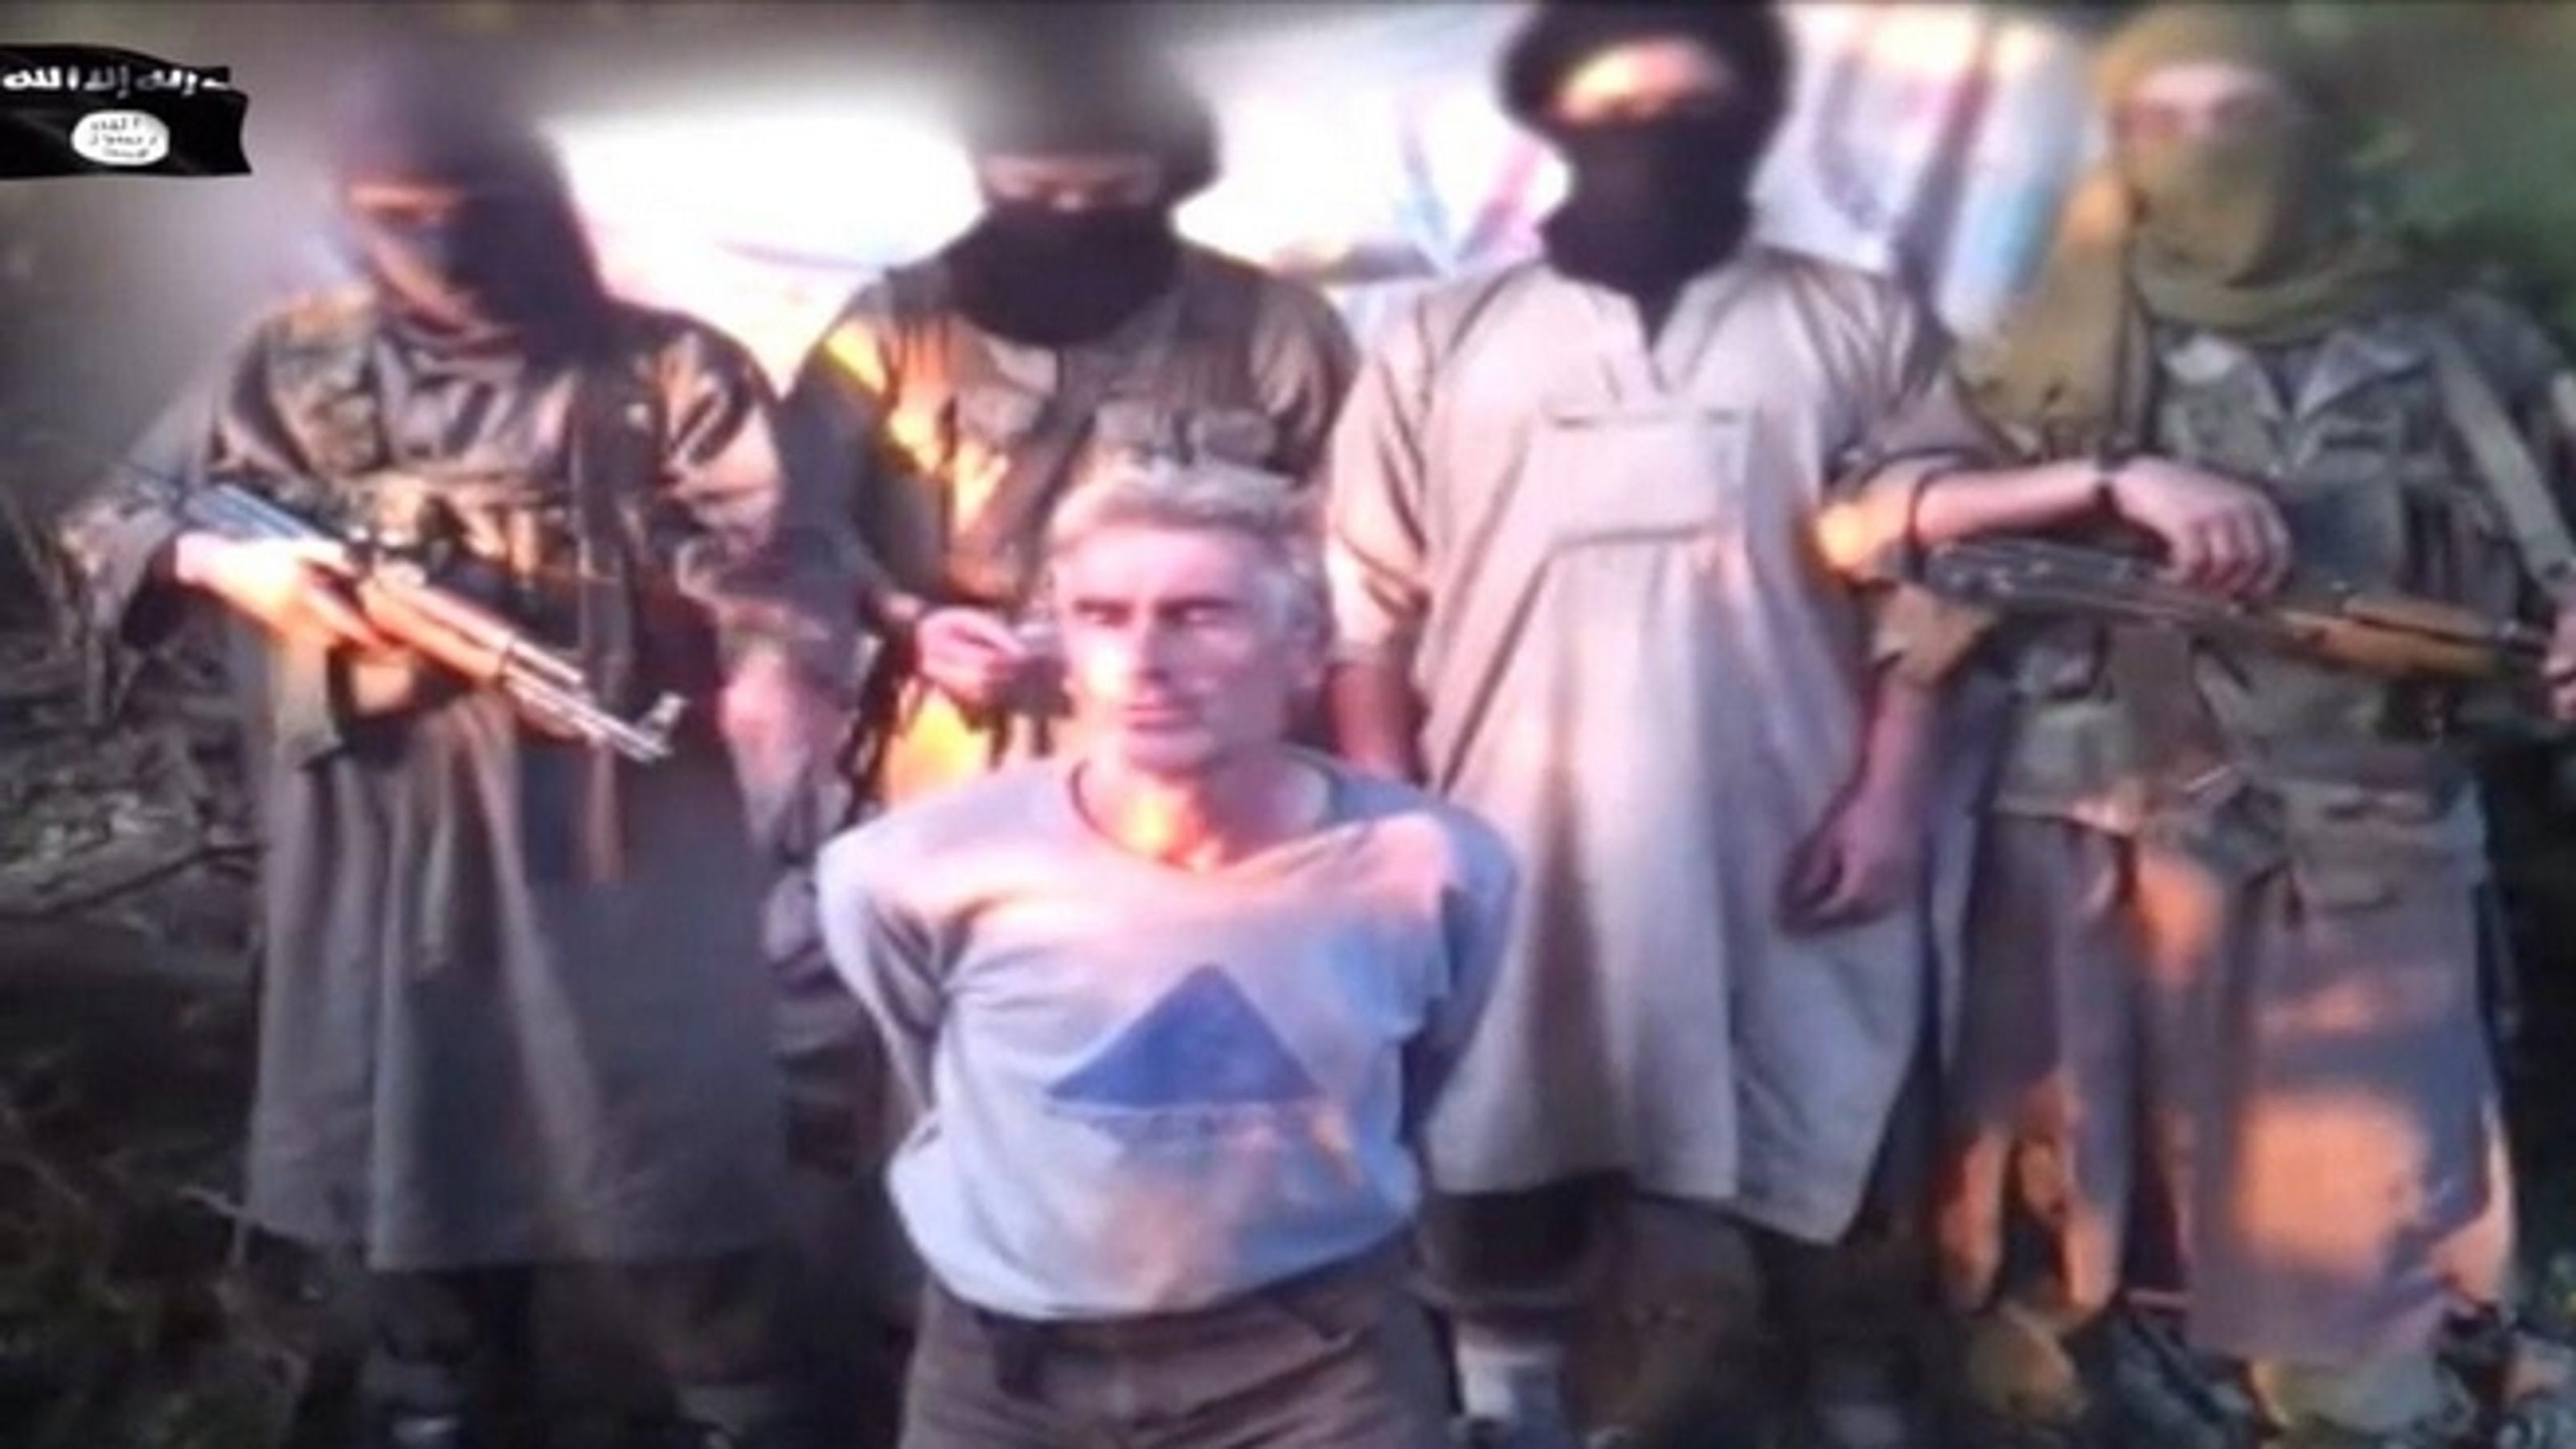 Jihadist video claims beheading of French hostage